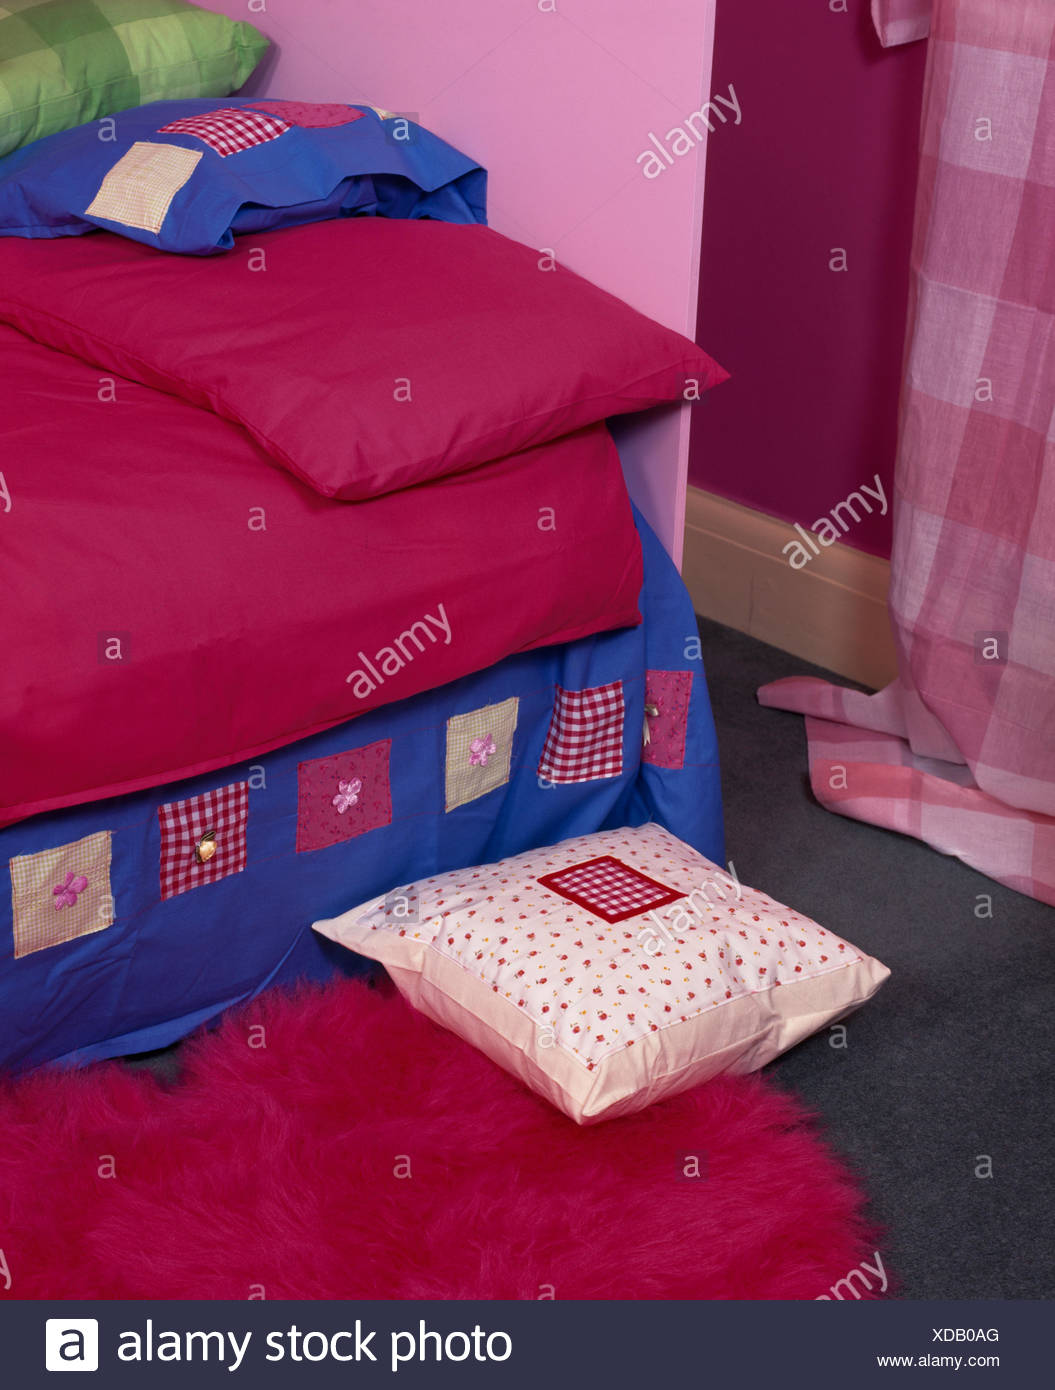 Bed with deep pink bedlinen and appliqued valance in nineties economy style bedroom - Stock Image